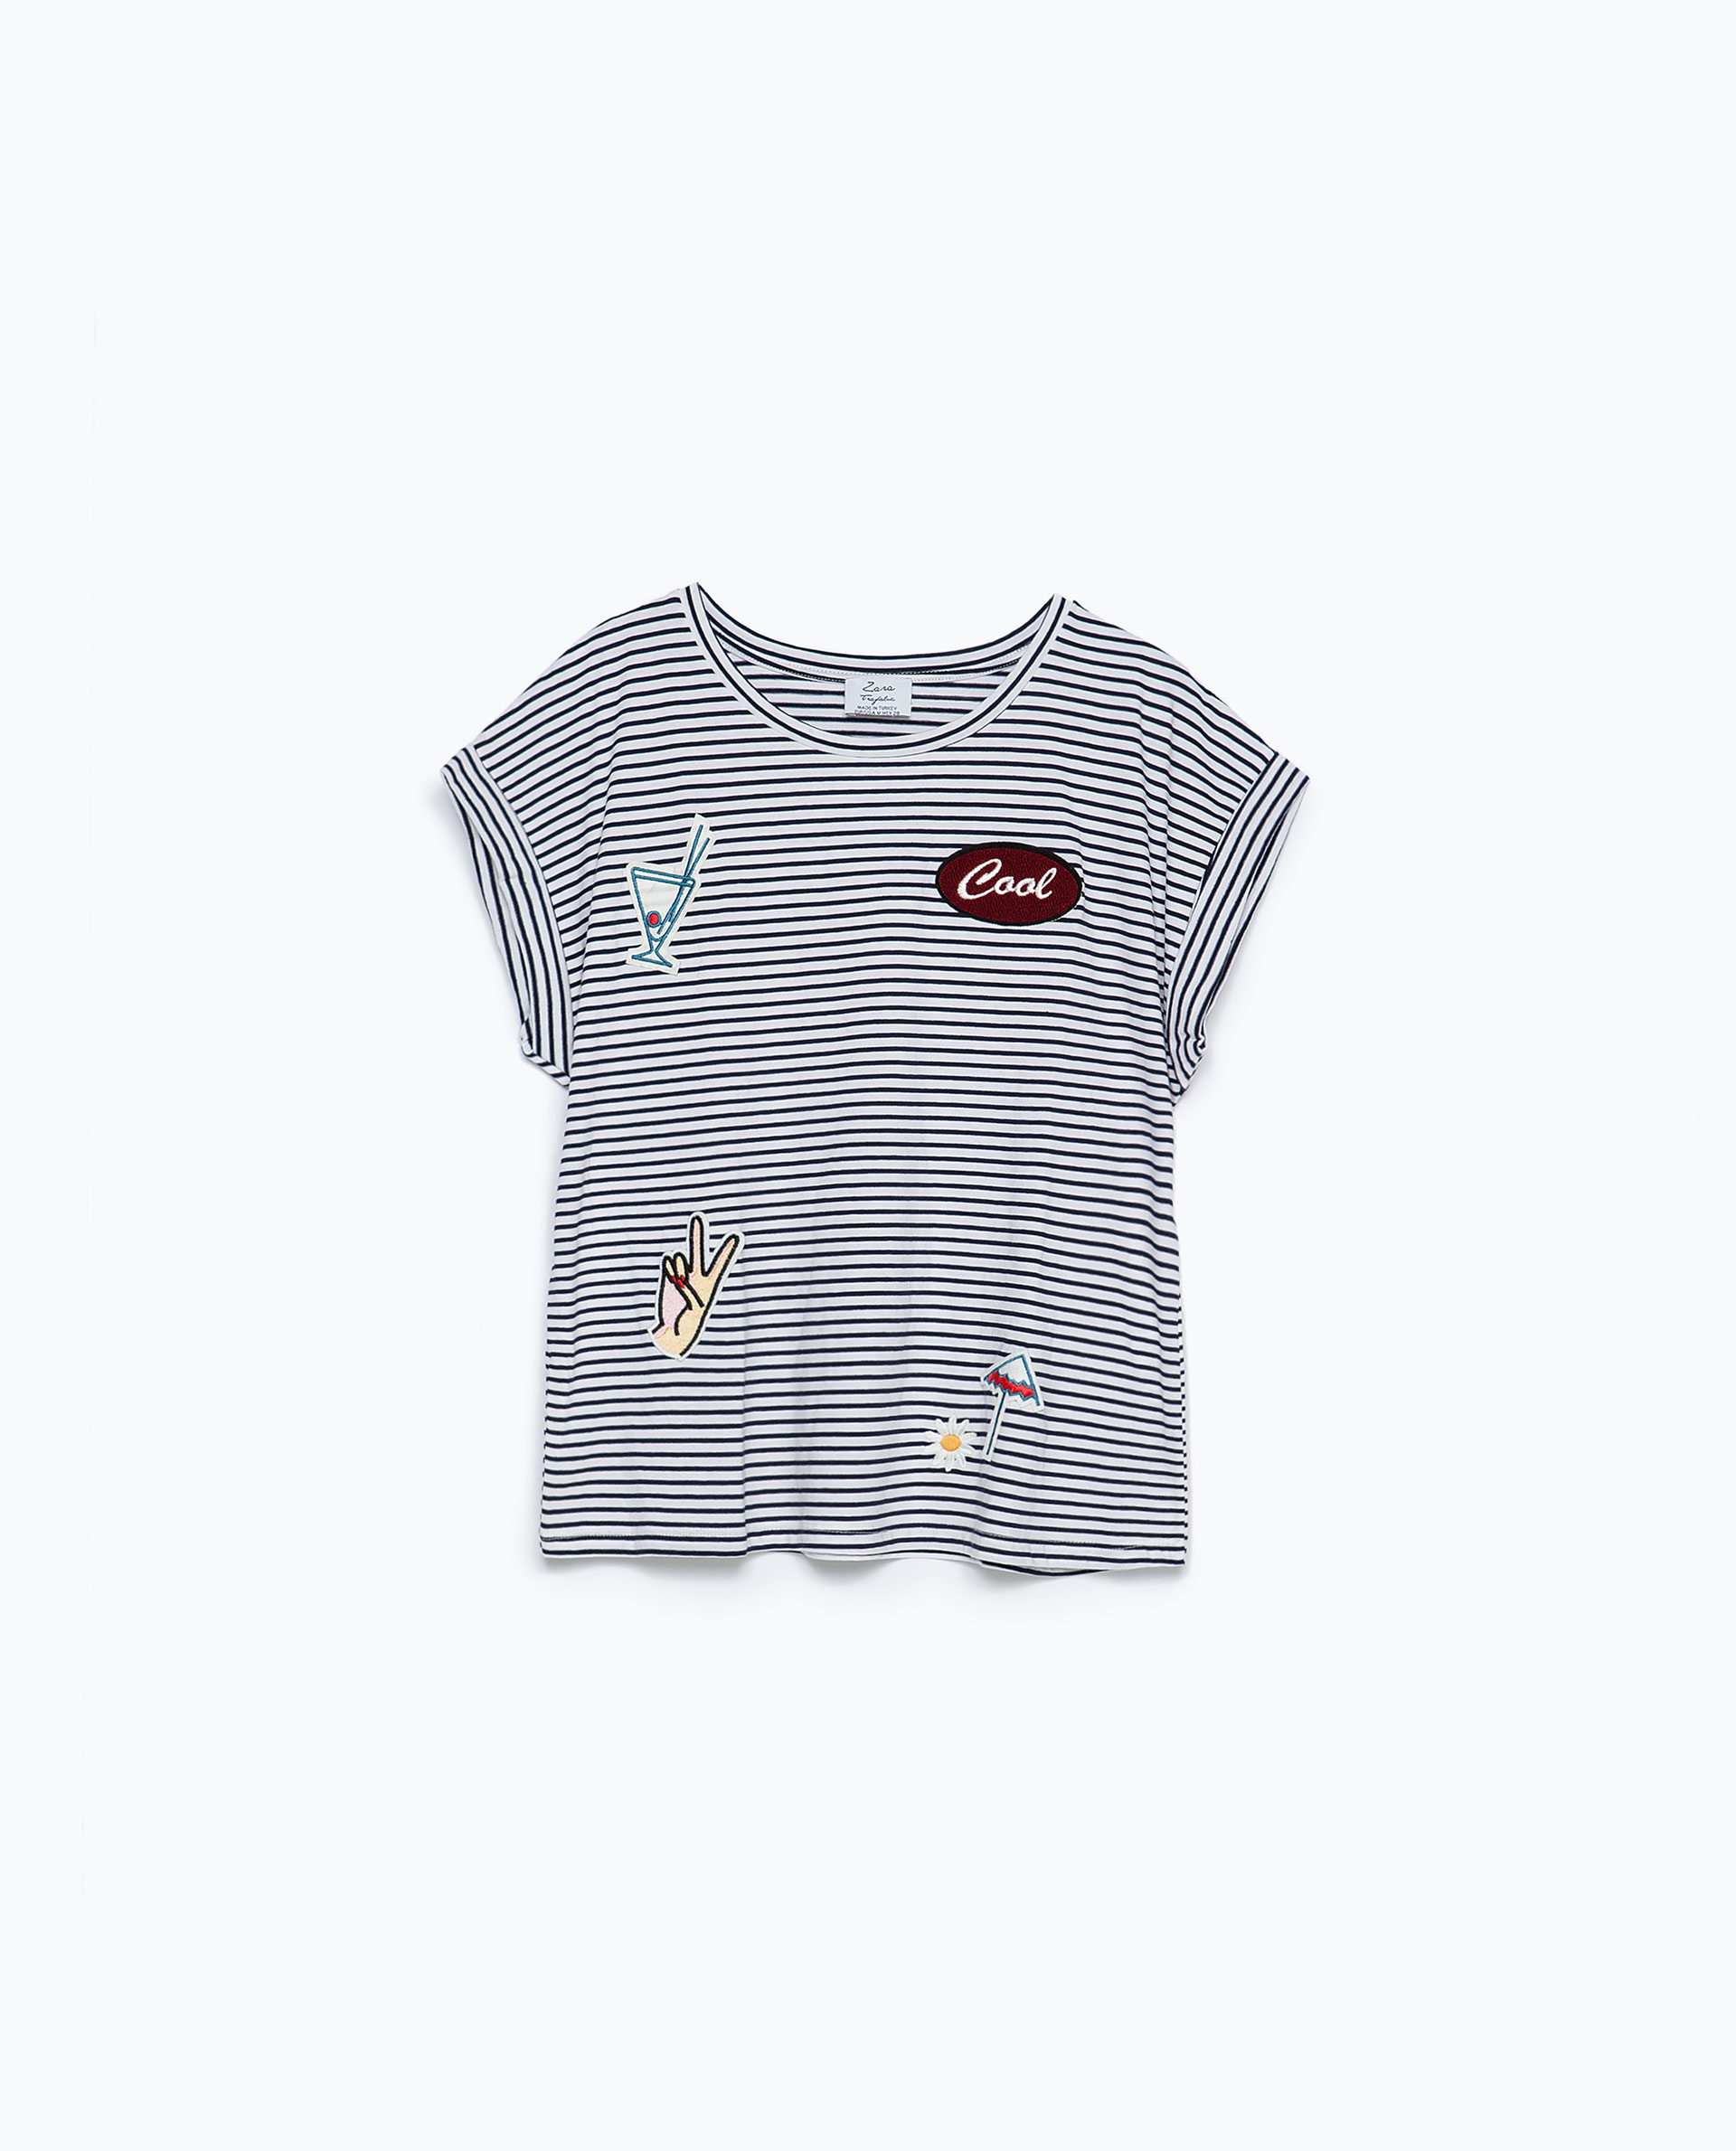 Zara schoudertas met patches : Zara striped t shirt with patch in gray white navy lyst